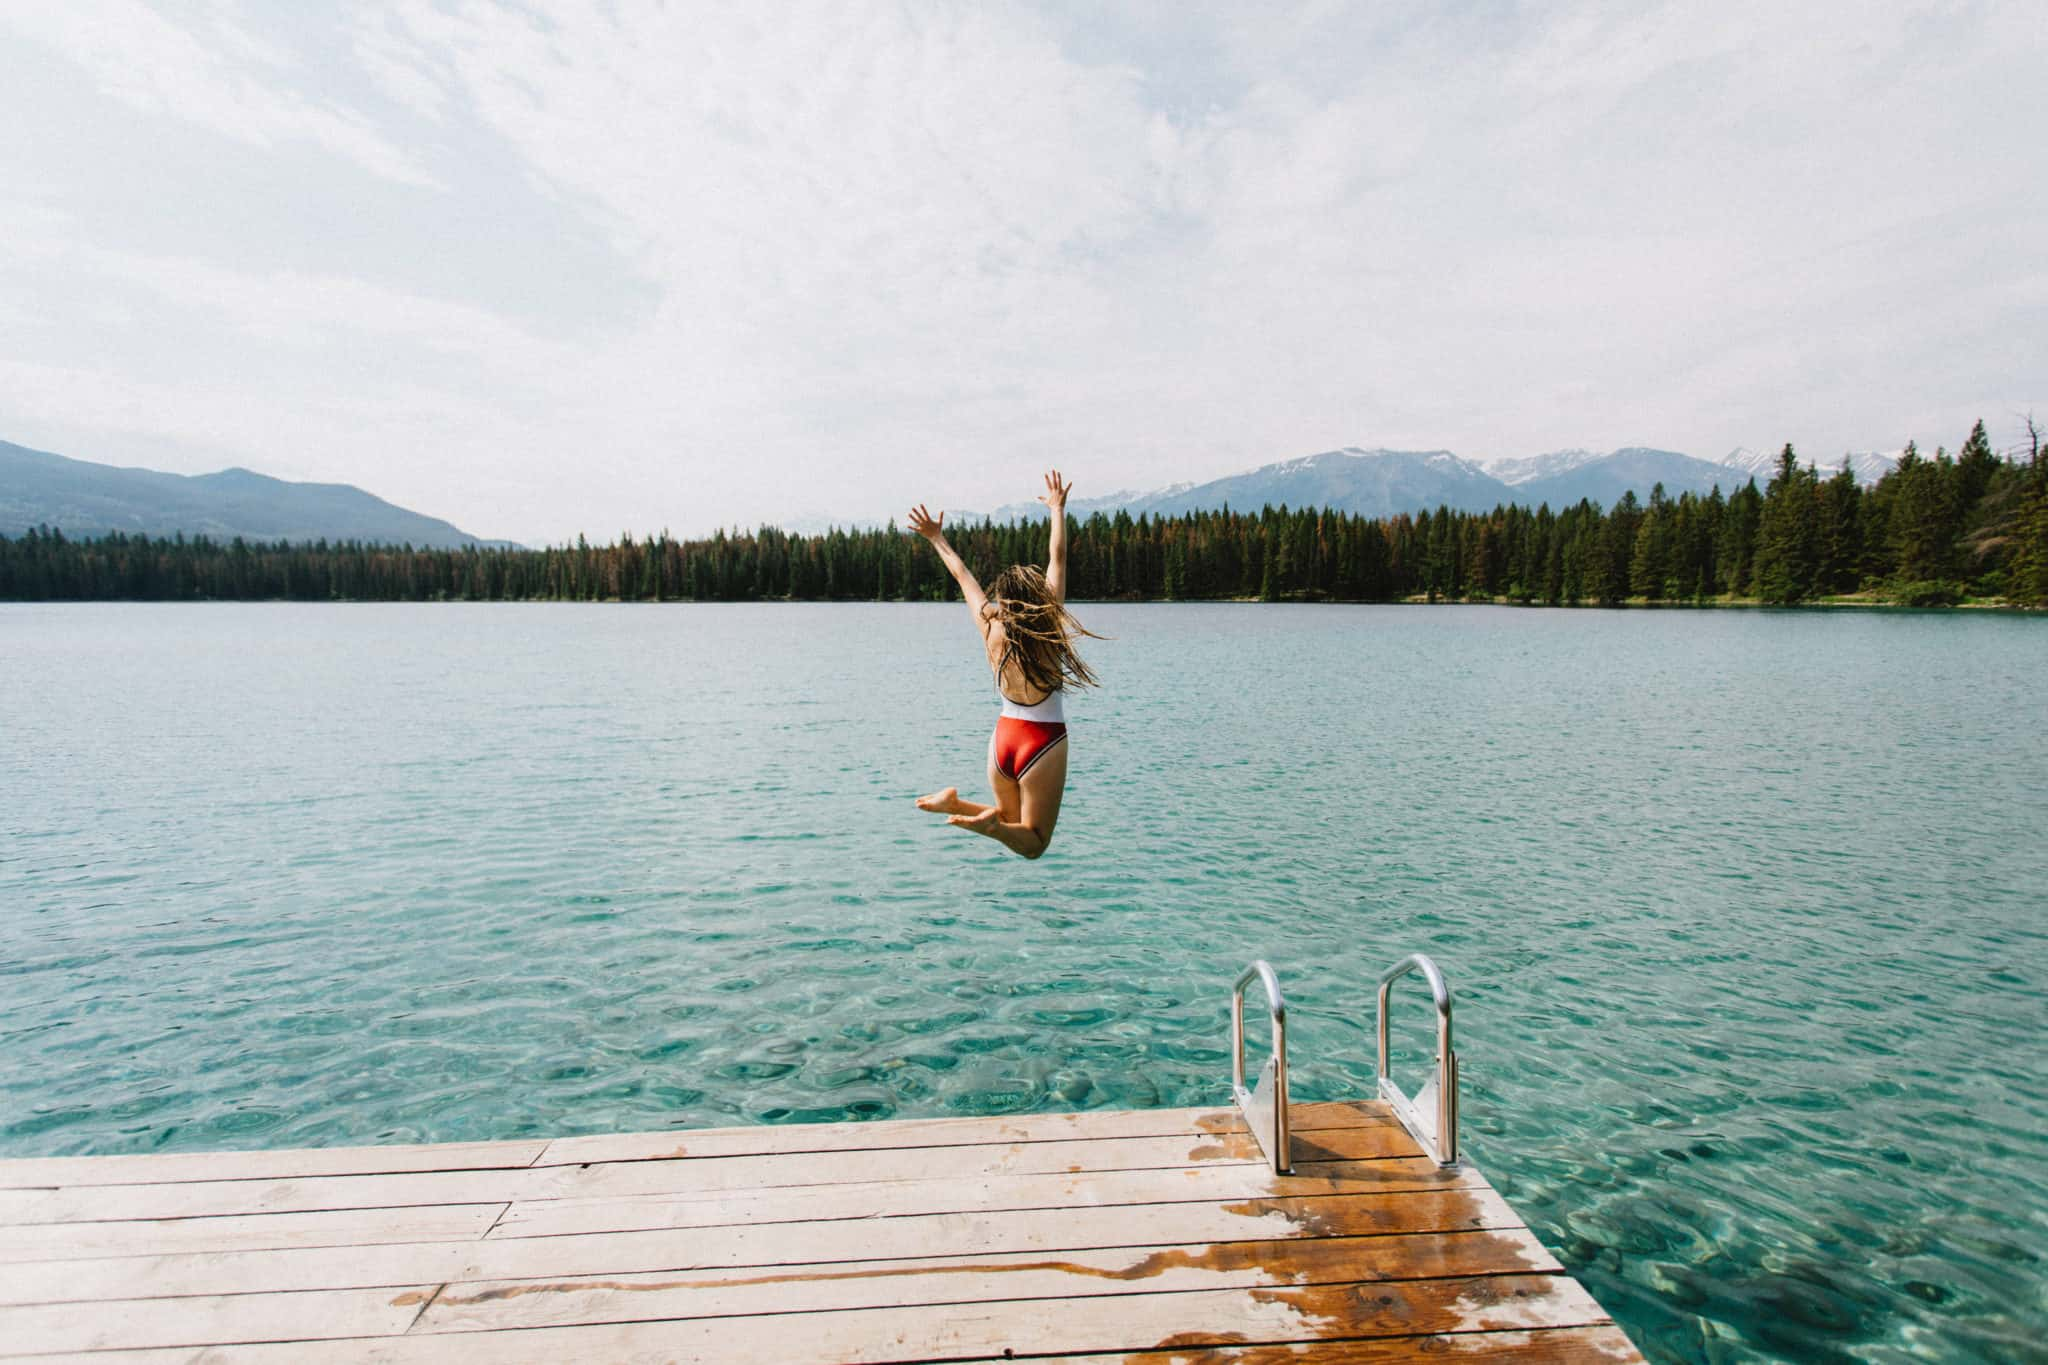 Emily jumping into Lake Anette, Jasper National Park